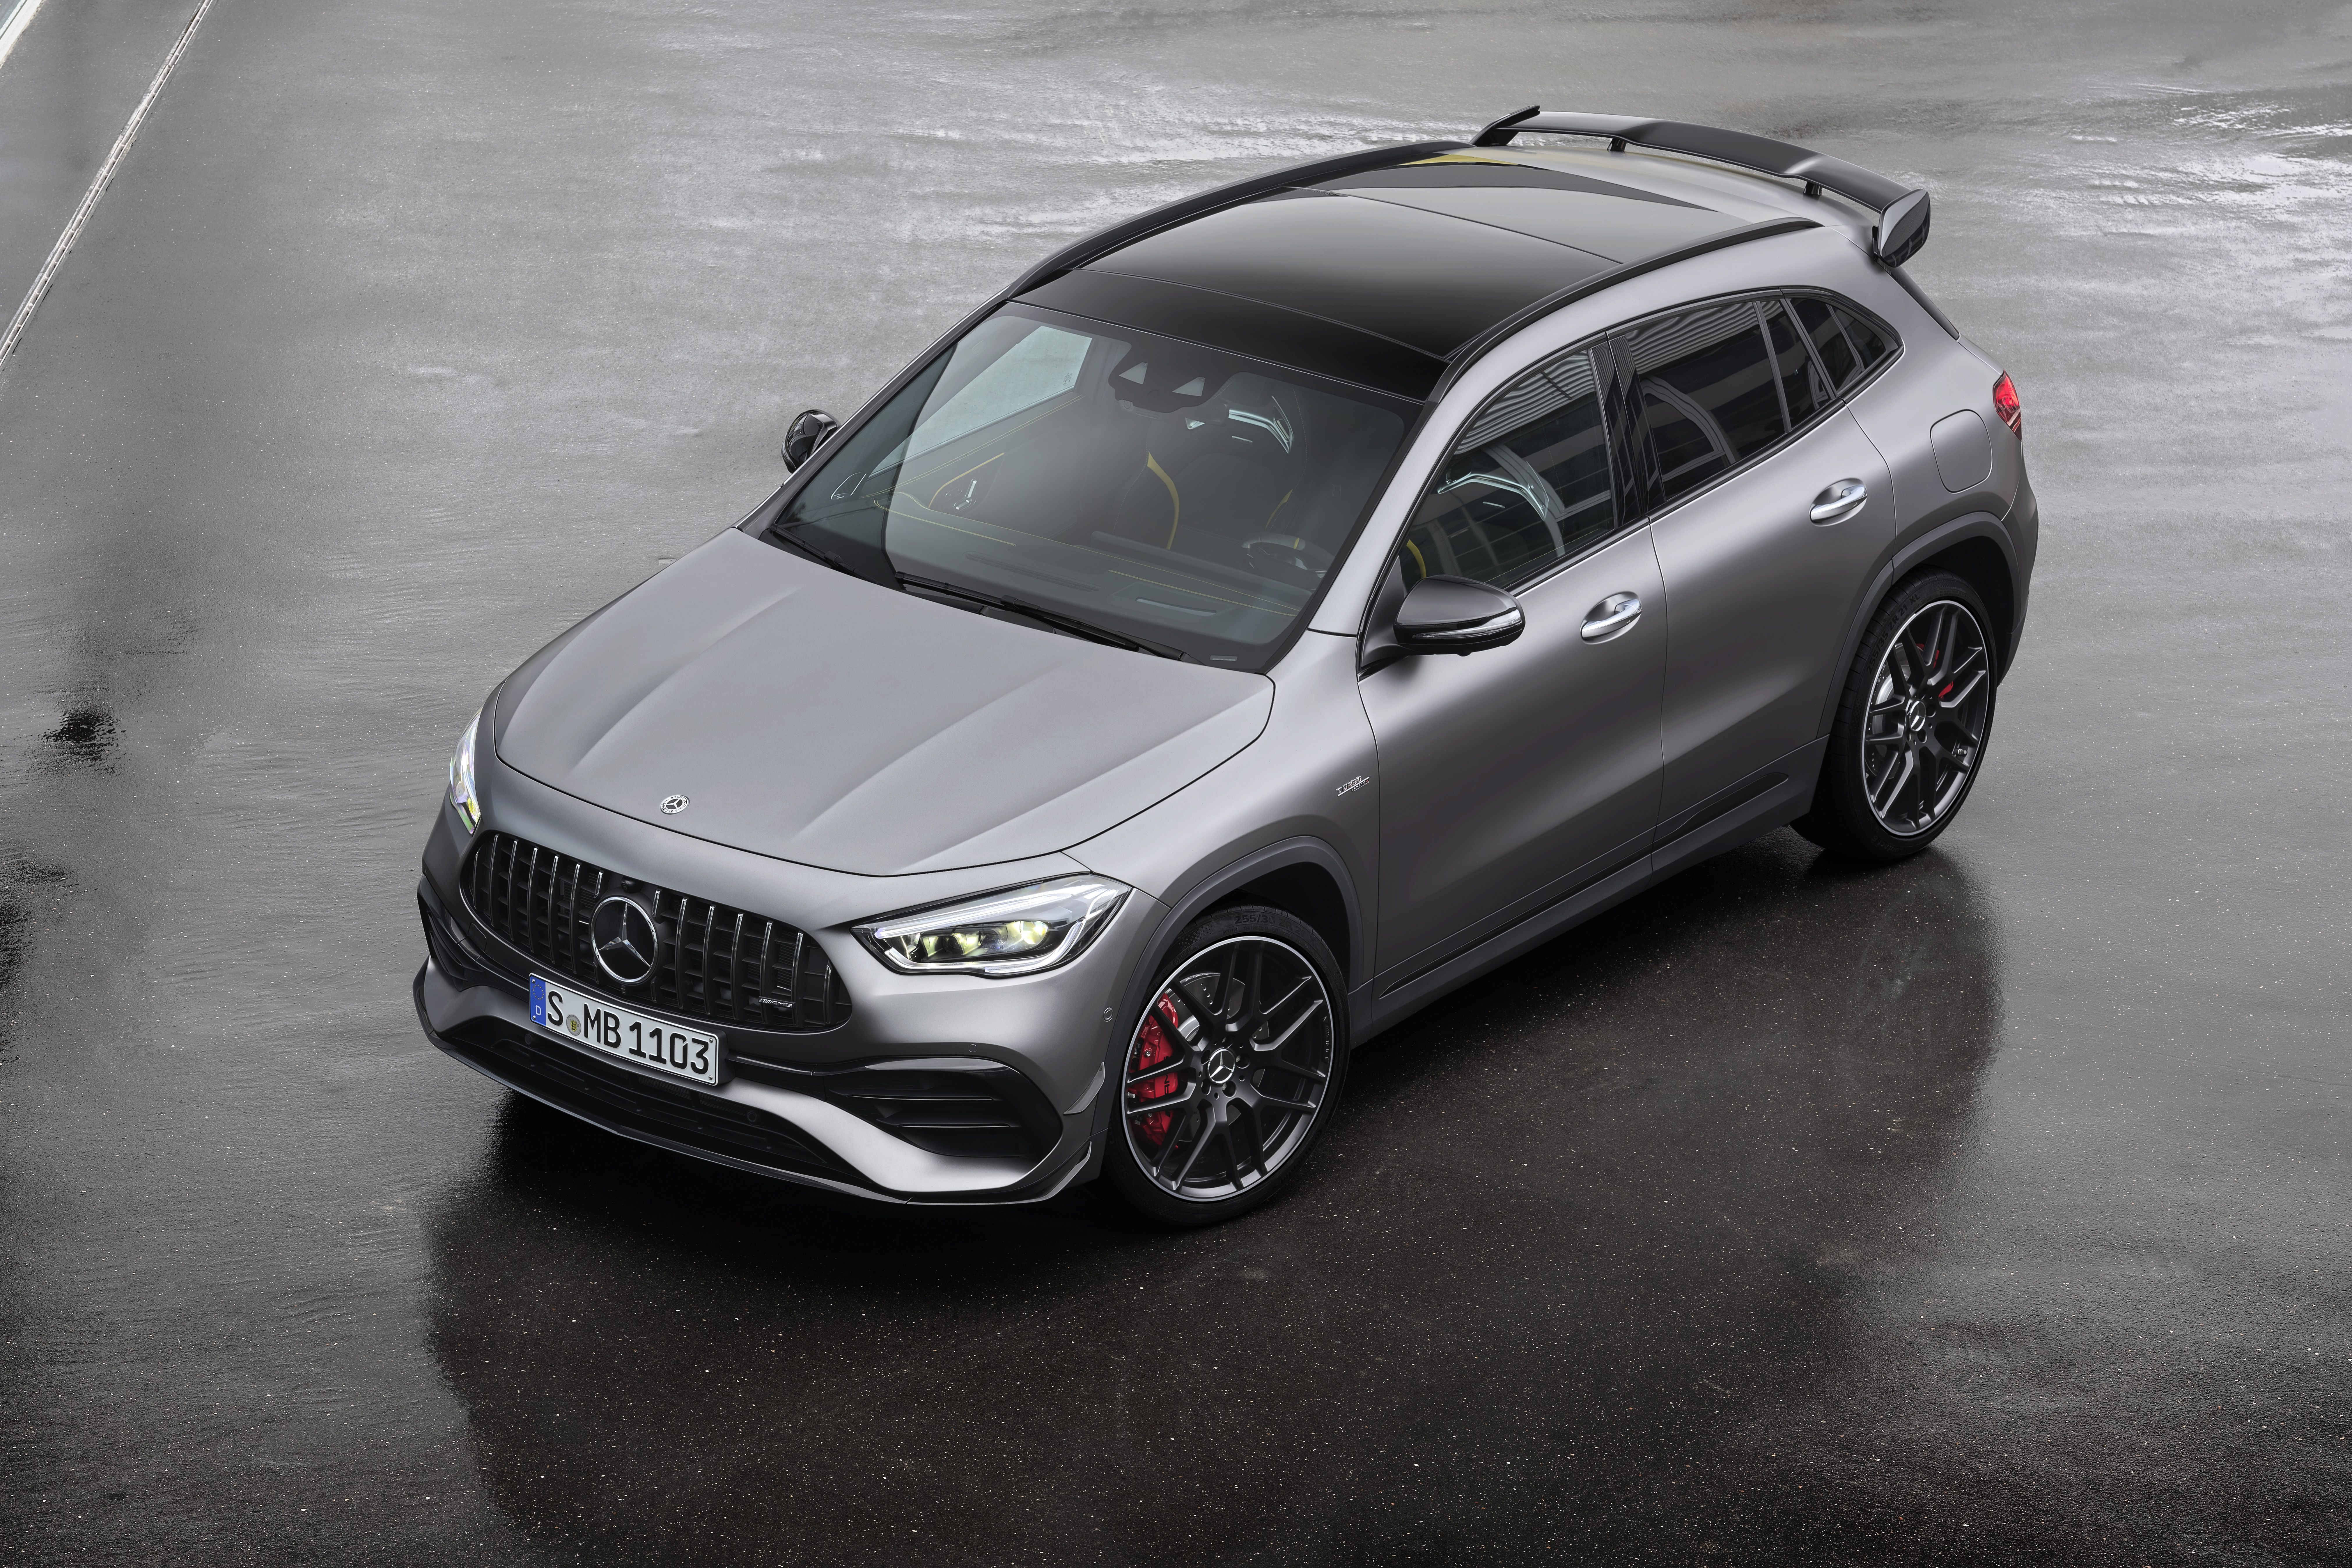 Mercedes Benz Amg Gla 45 4matic Factory Issued Press Photo 2020